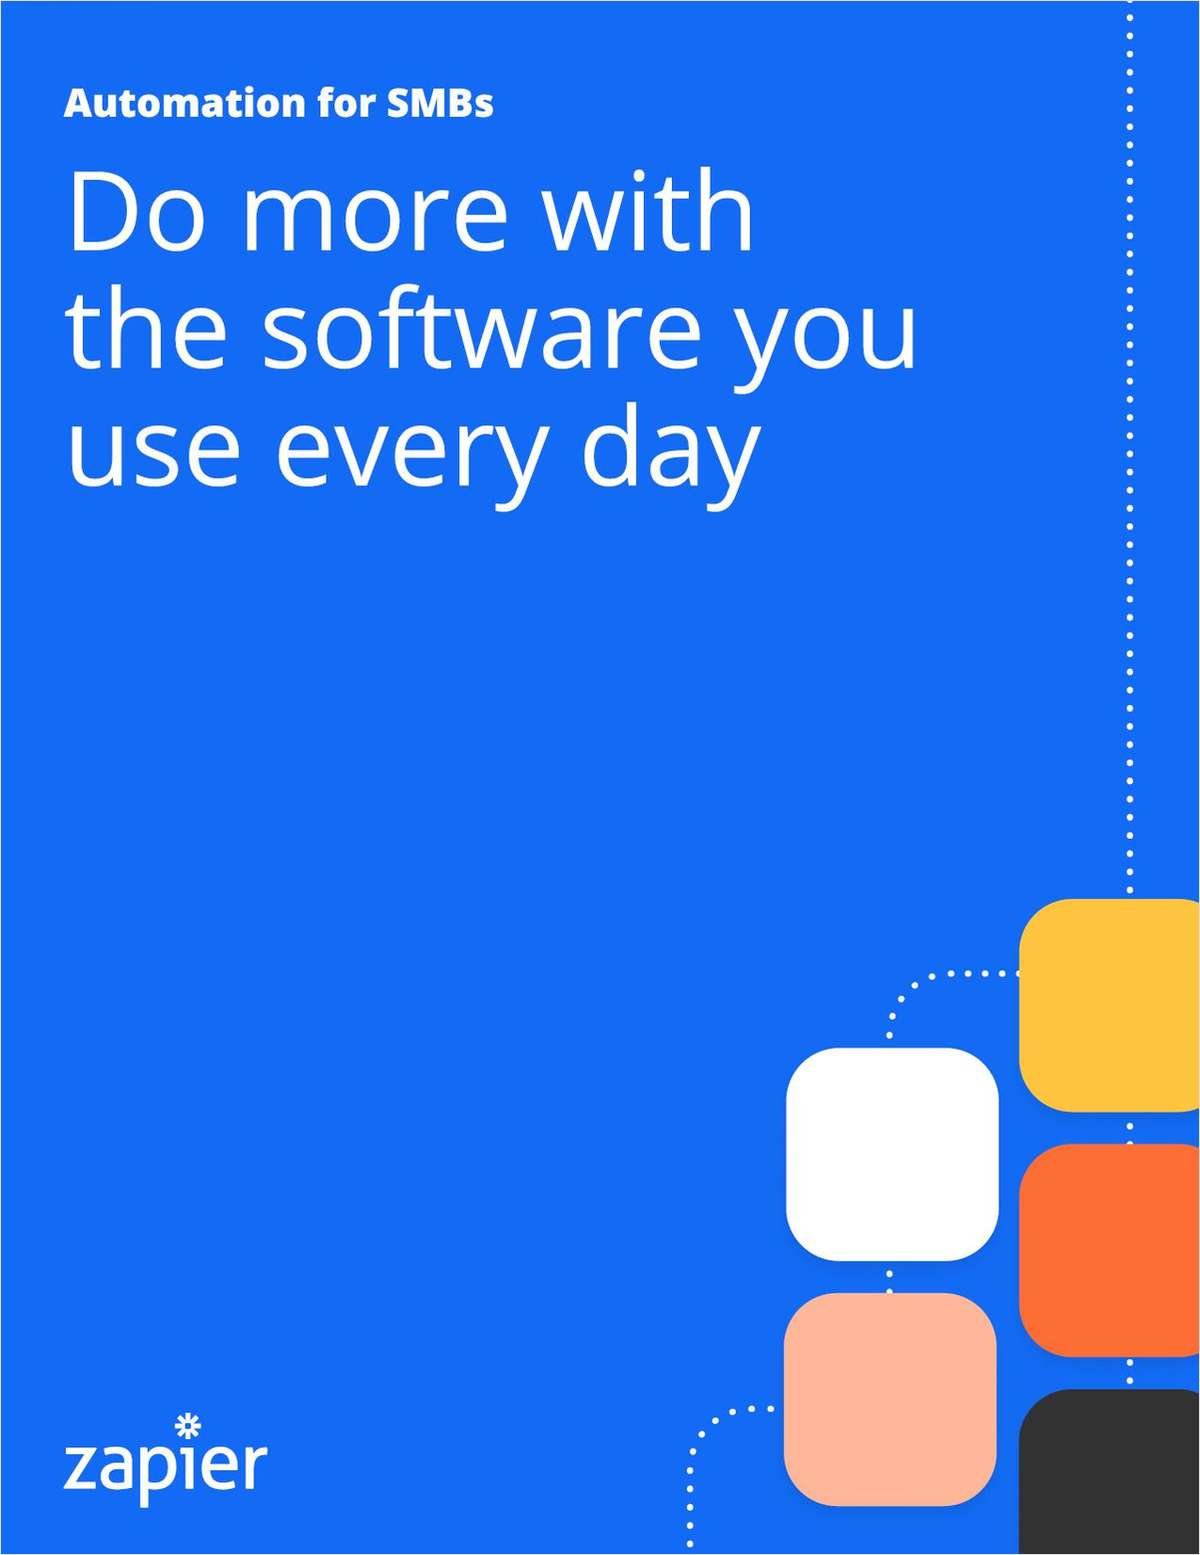 Automation for SMBs: Do more with the software you use every day